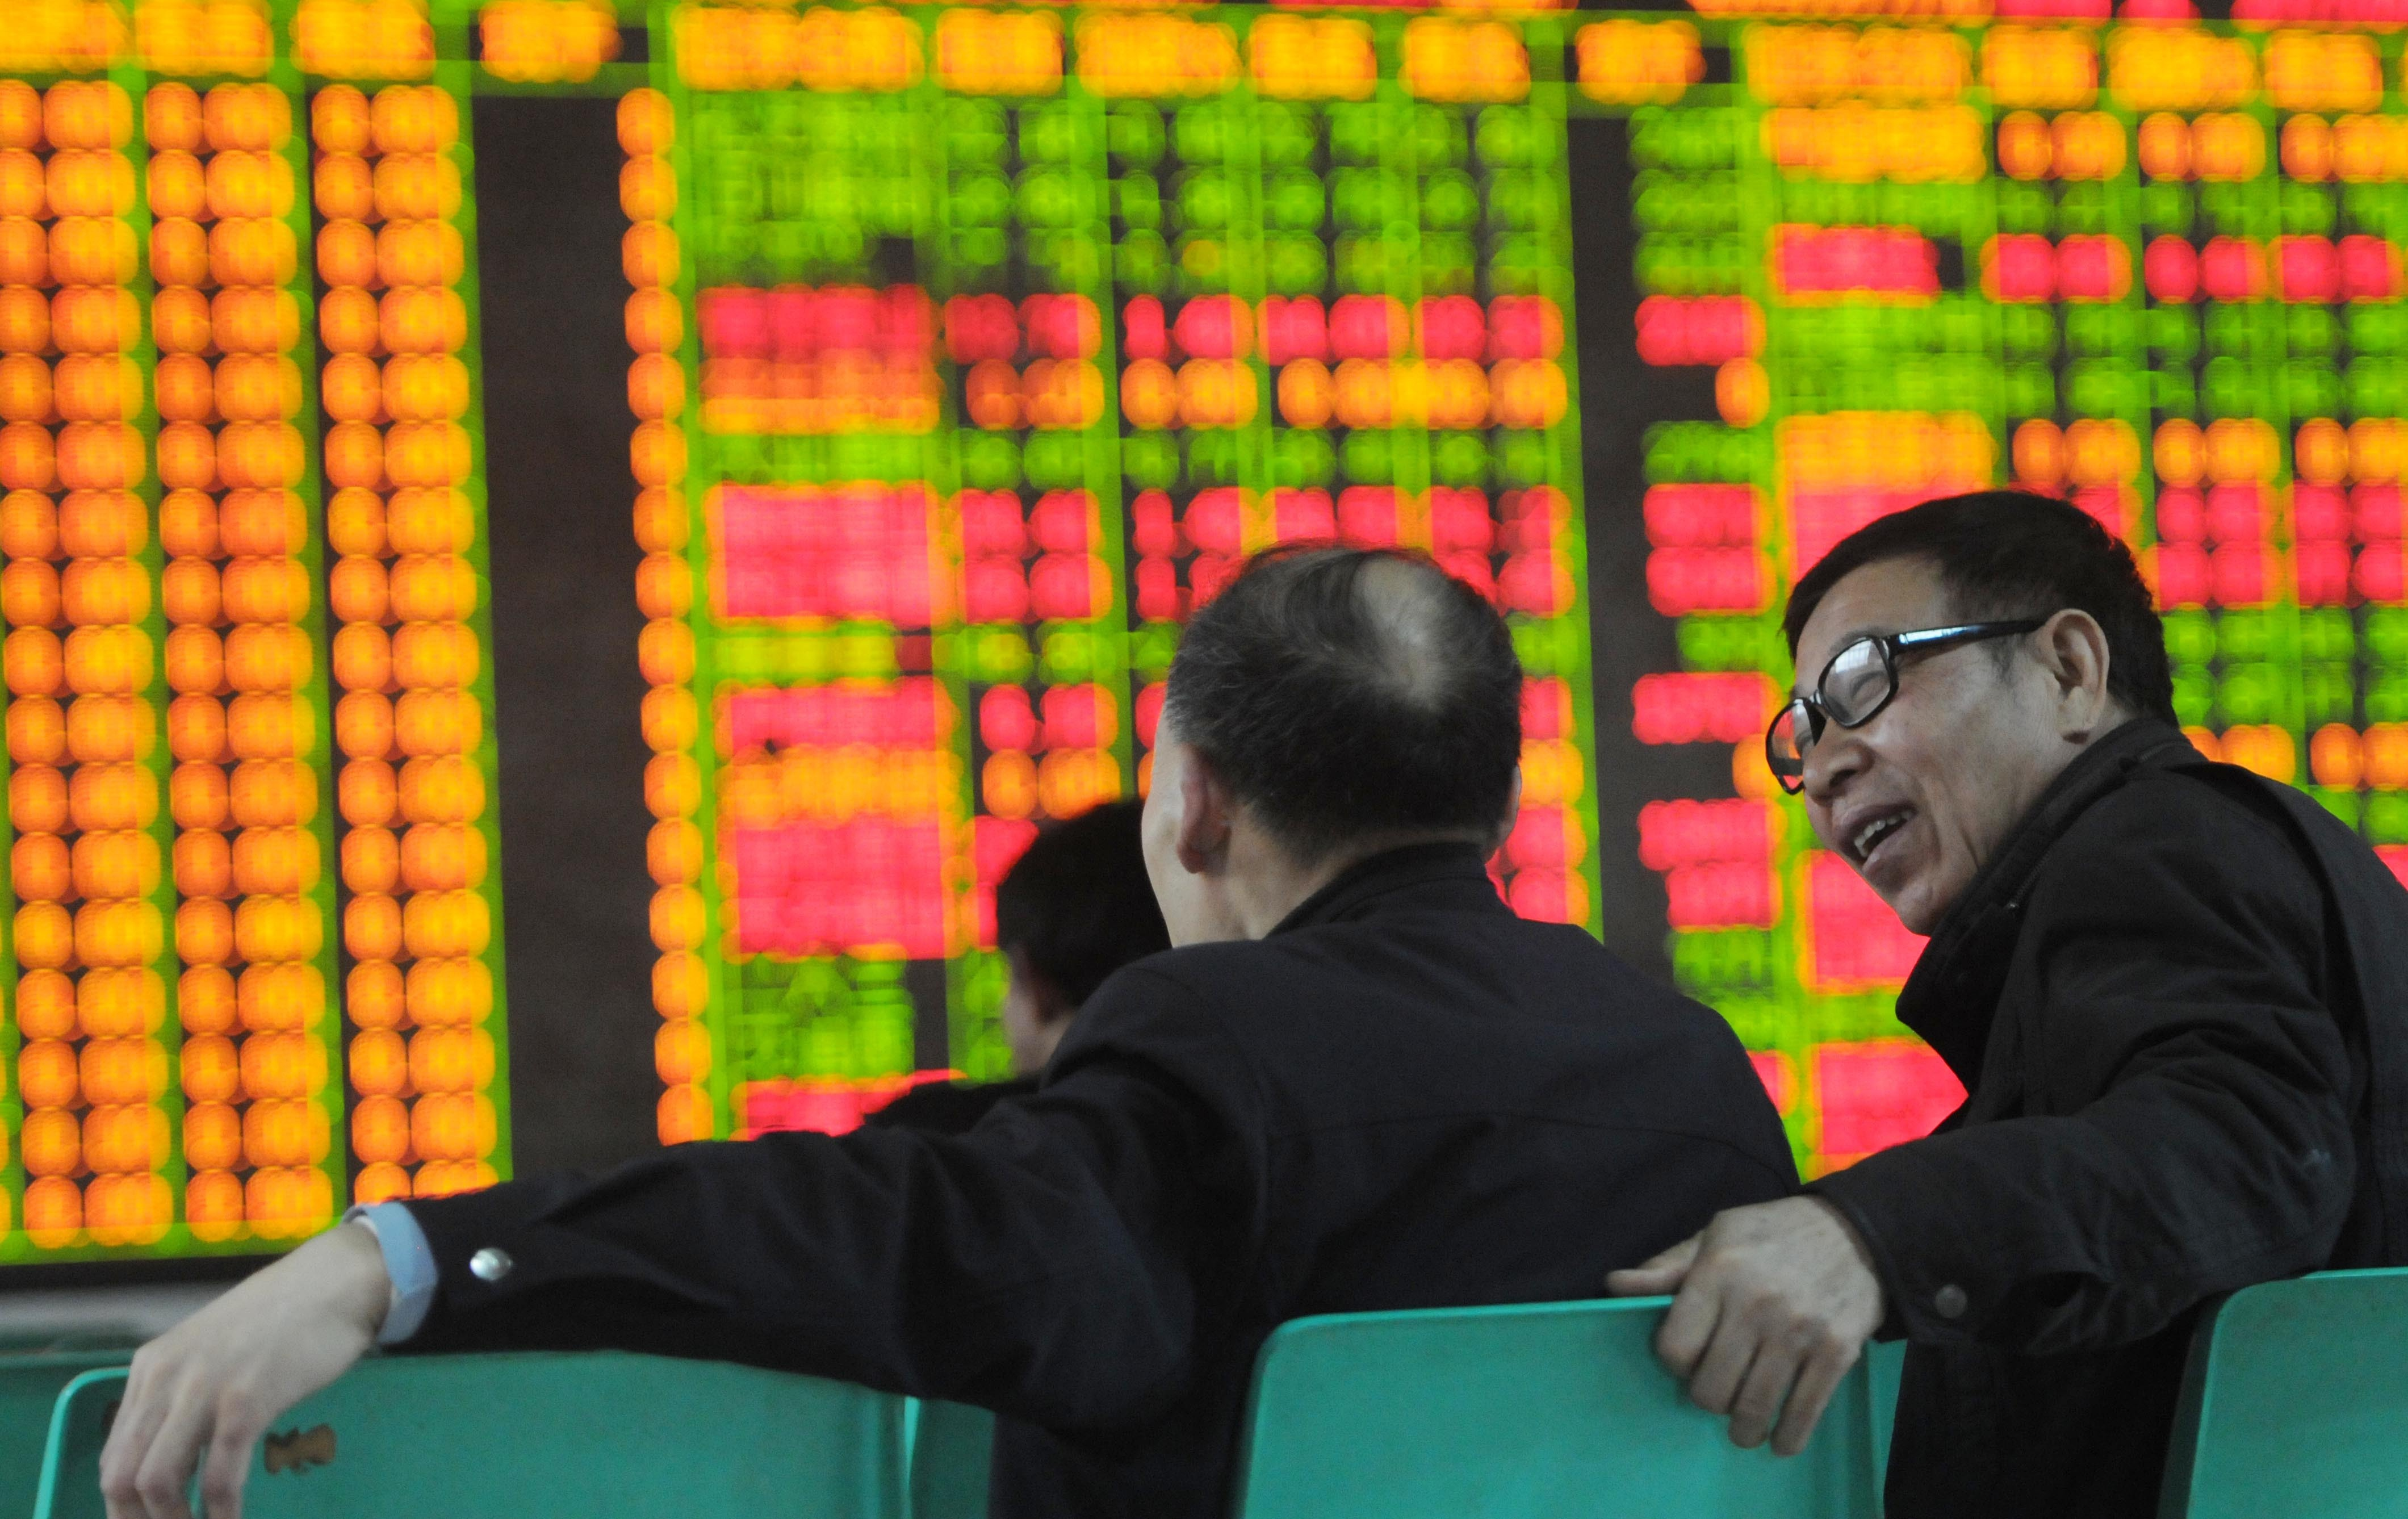 The Shanghai Composite Index Rises 2.2% To 4300 Points